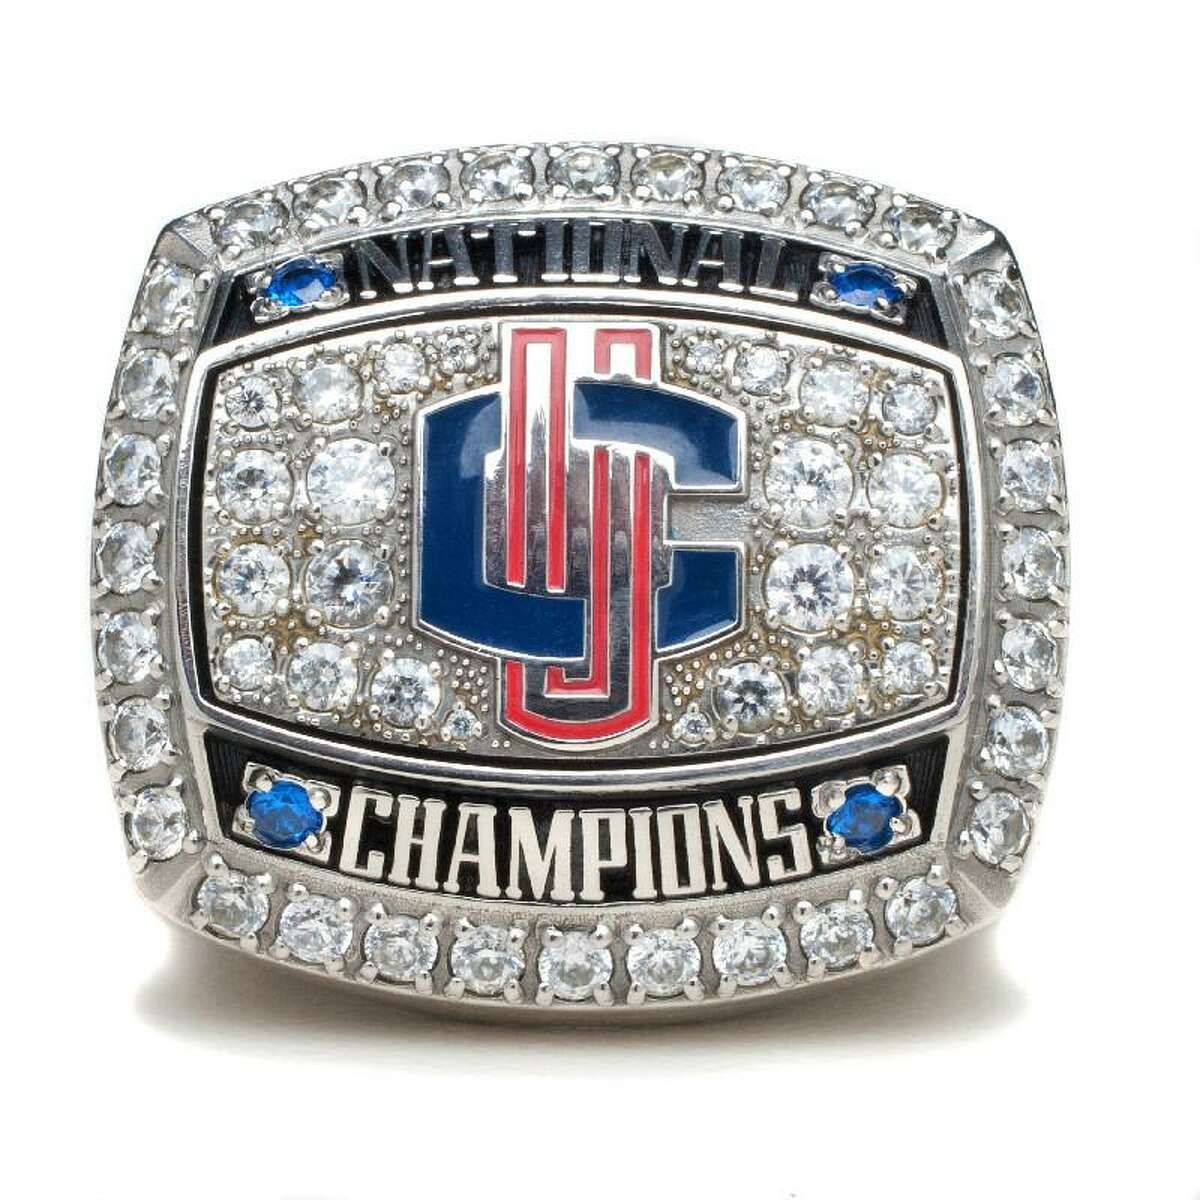 ASSOCIATED PRESS The UConn men's basketball 2011 national championship ring is shown in an undated photo provided by the school's athletics department.